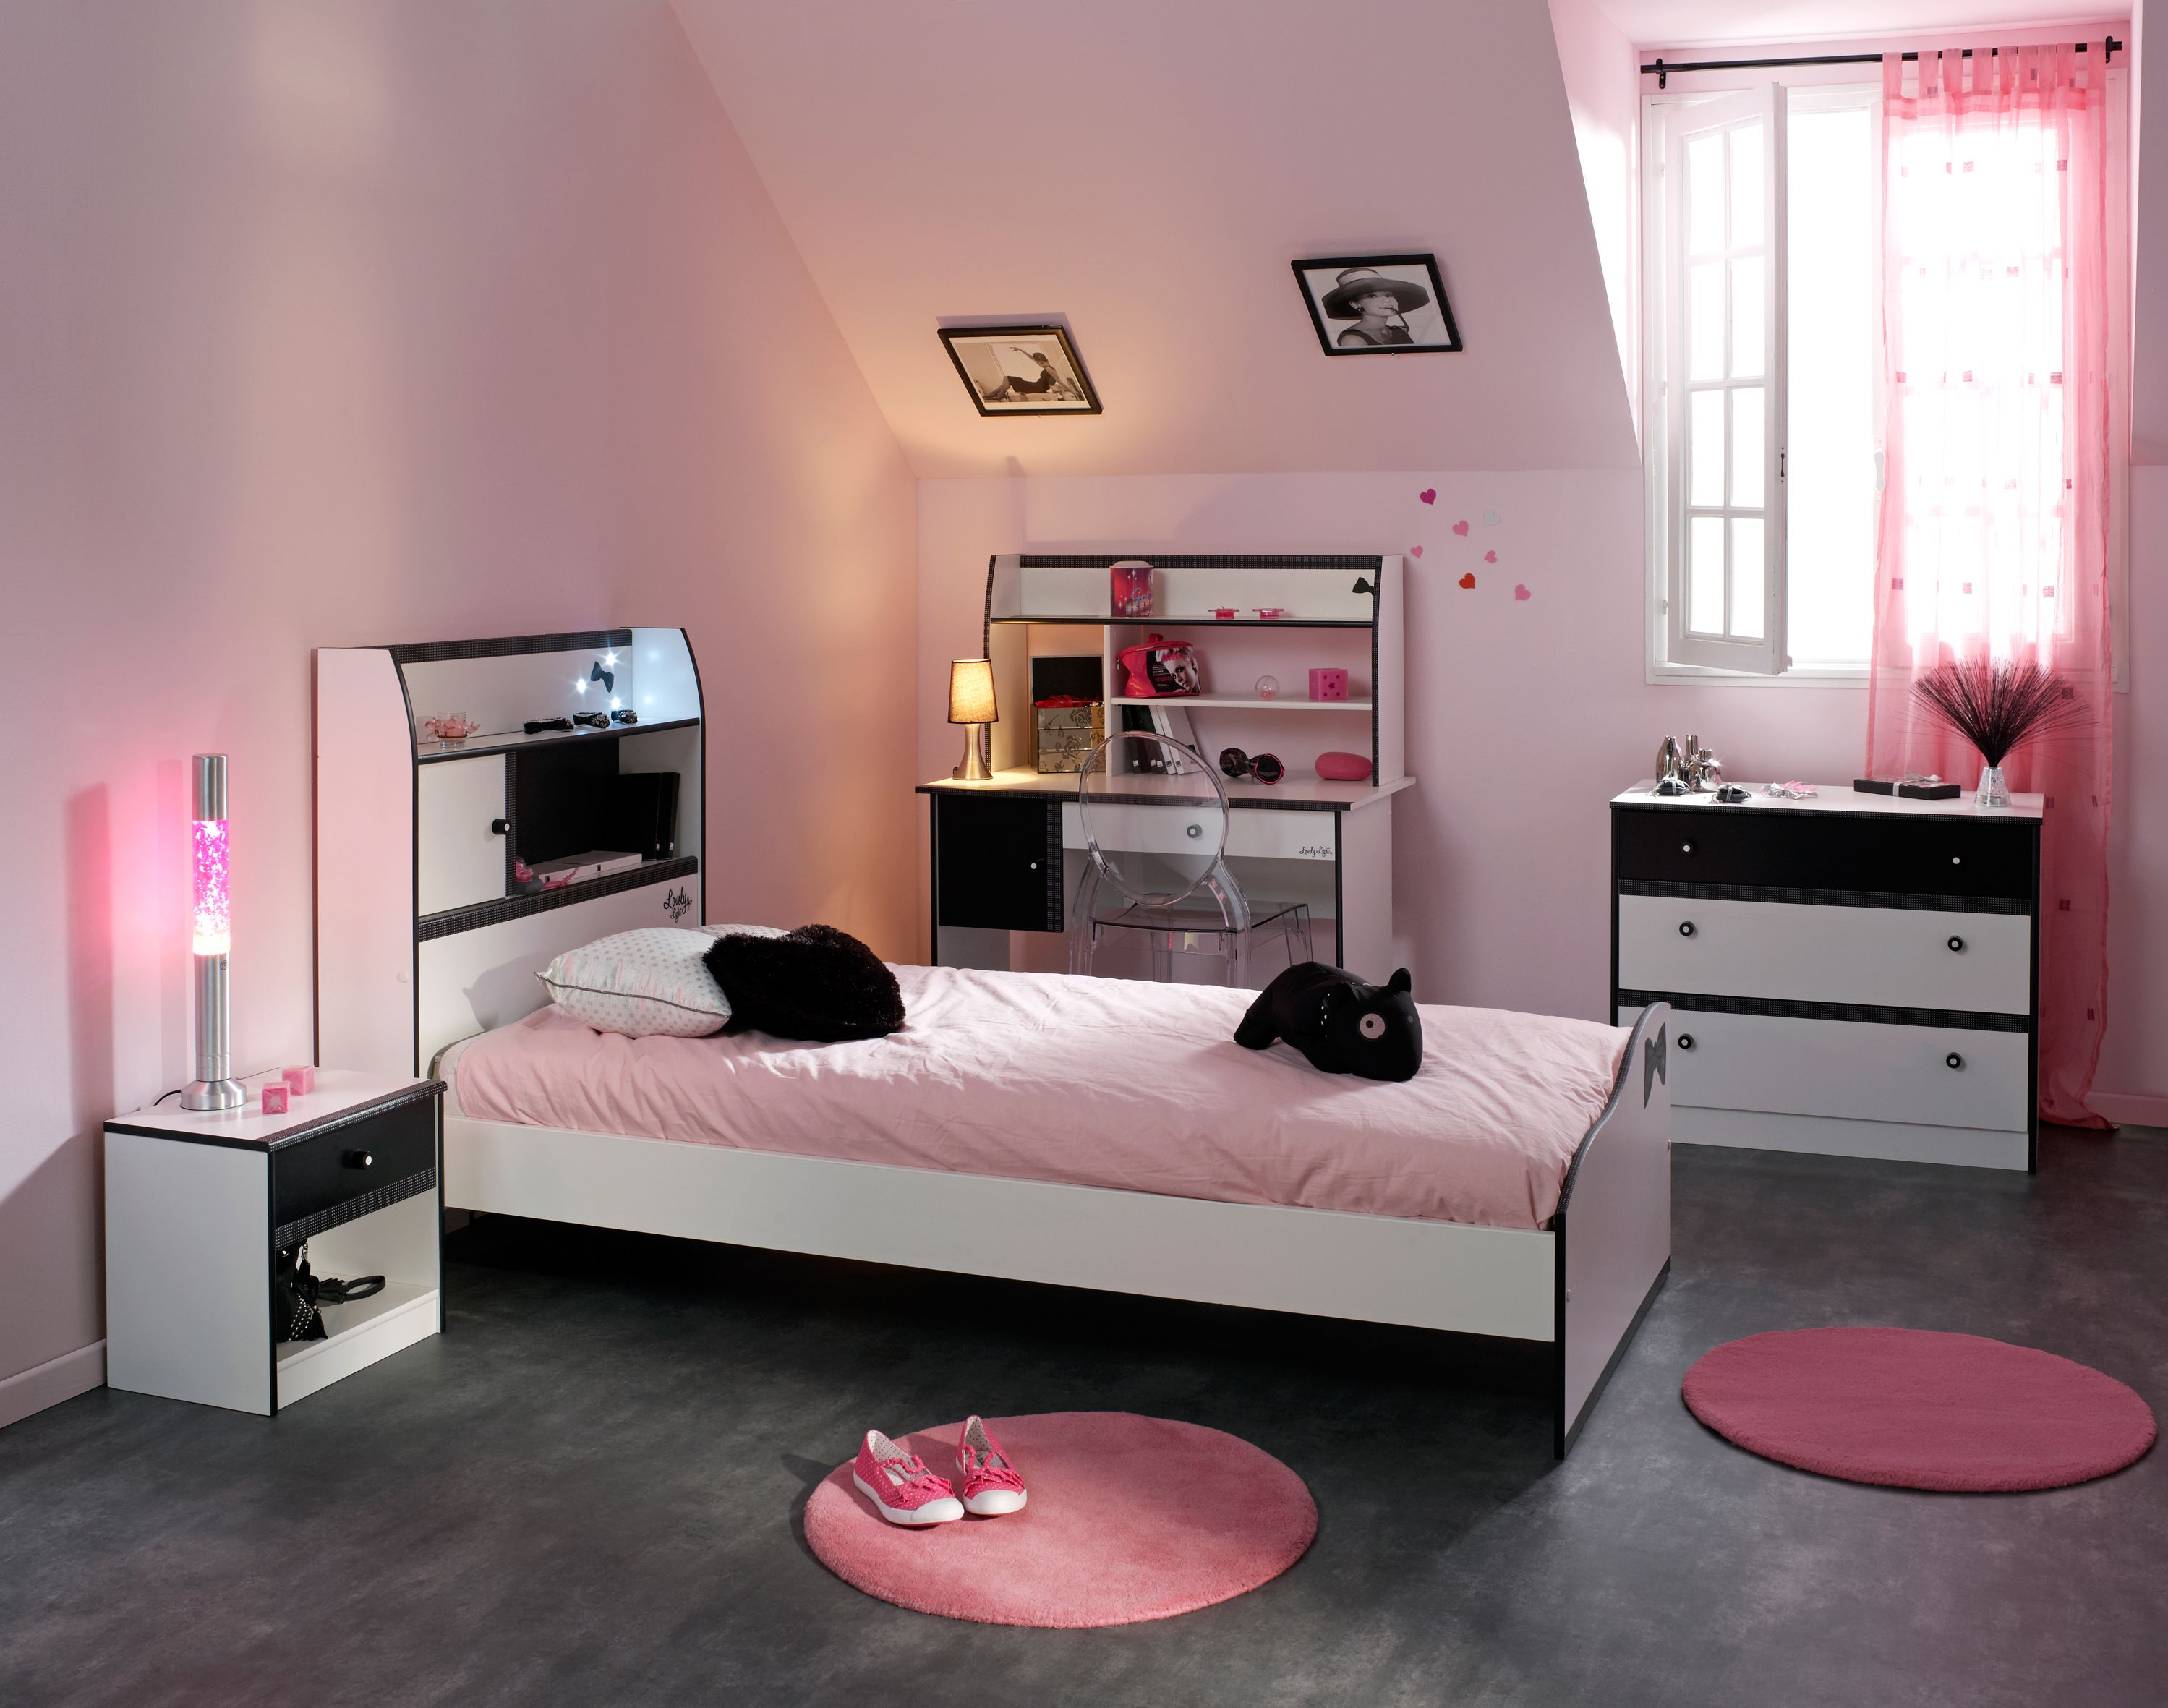 Stylish Chambre Ado Fille Moderne 17 Chambre Ado Fille Ikea With